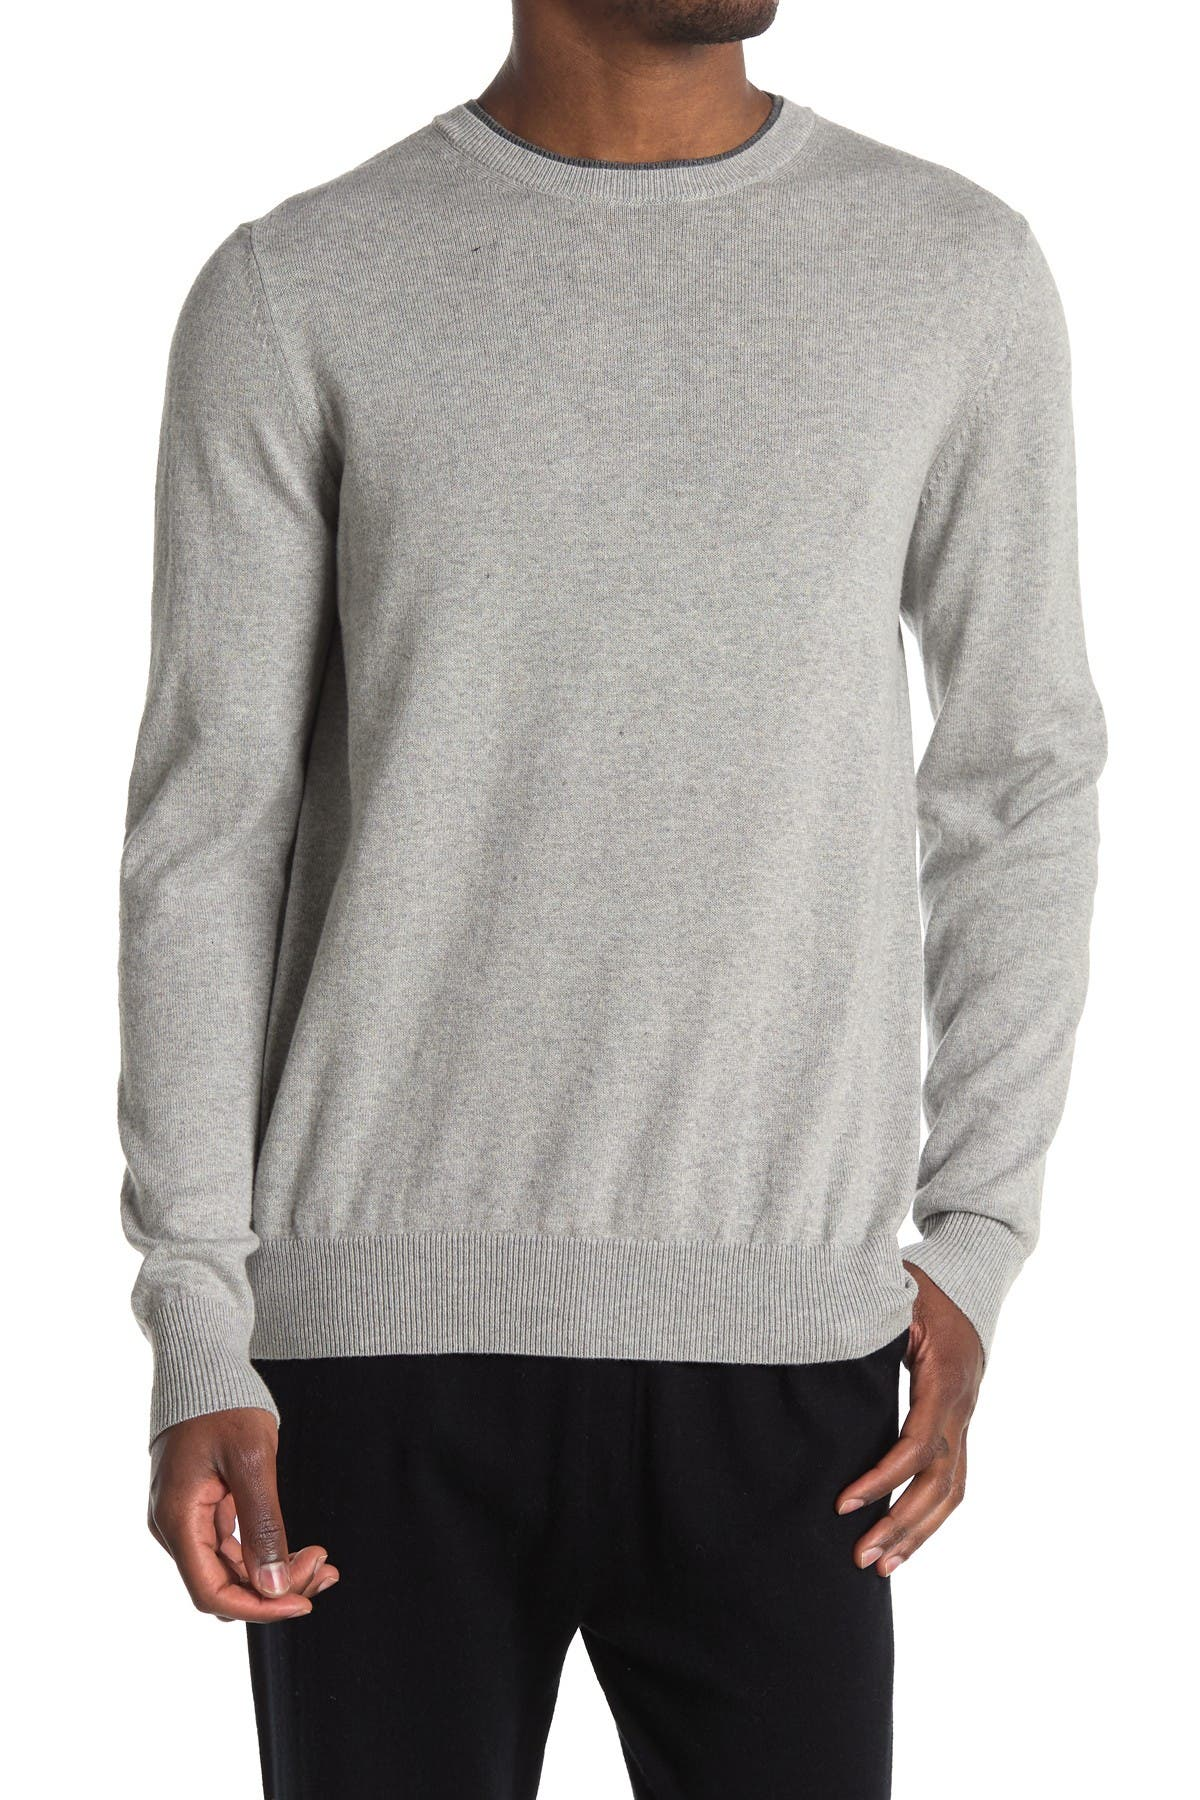 Image of AMICALE Contrast Trim Crew Neck Cotton Cashmere Blend Sweater